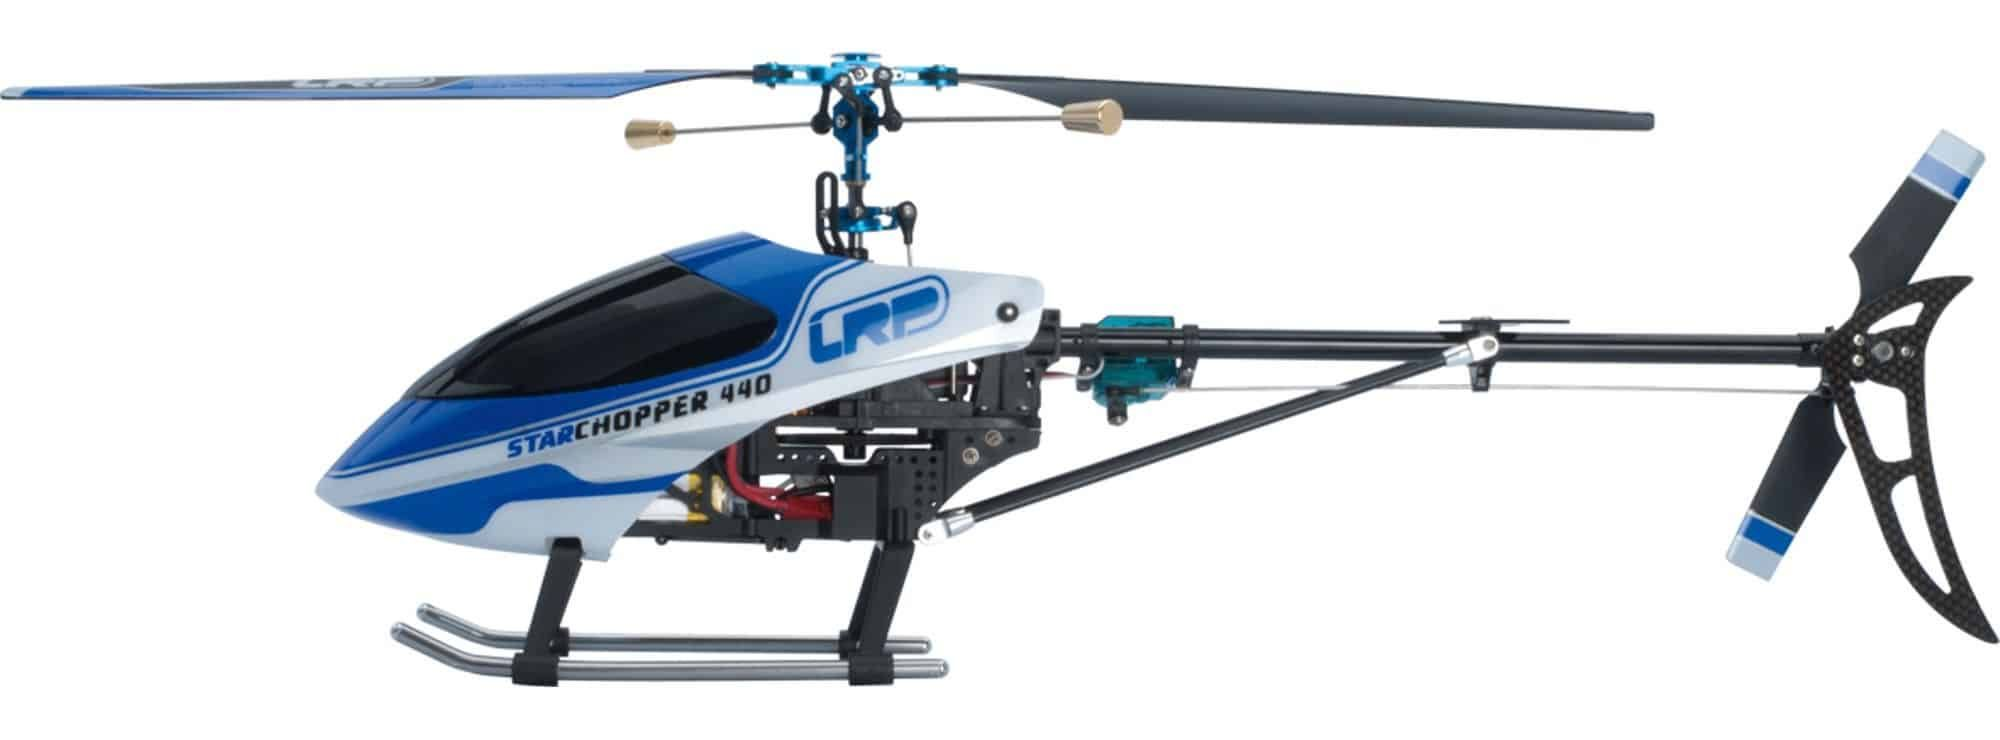 Single manned helicopter